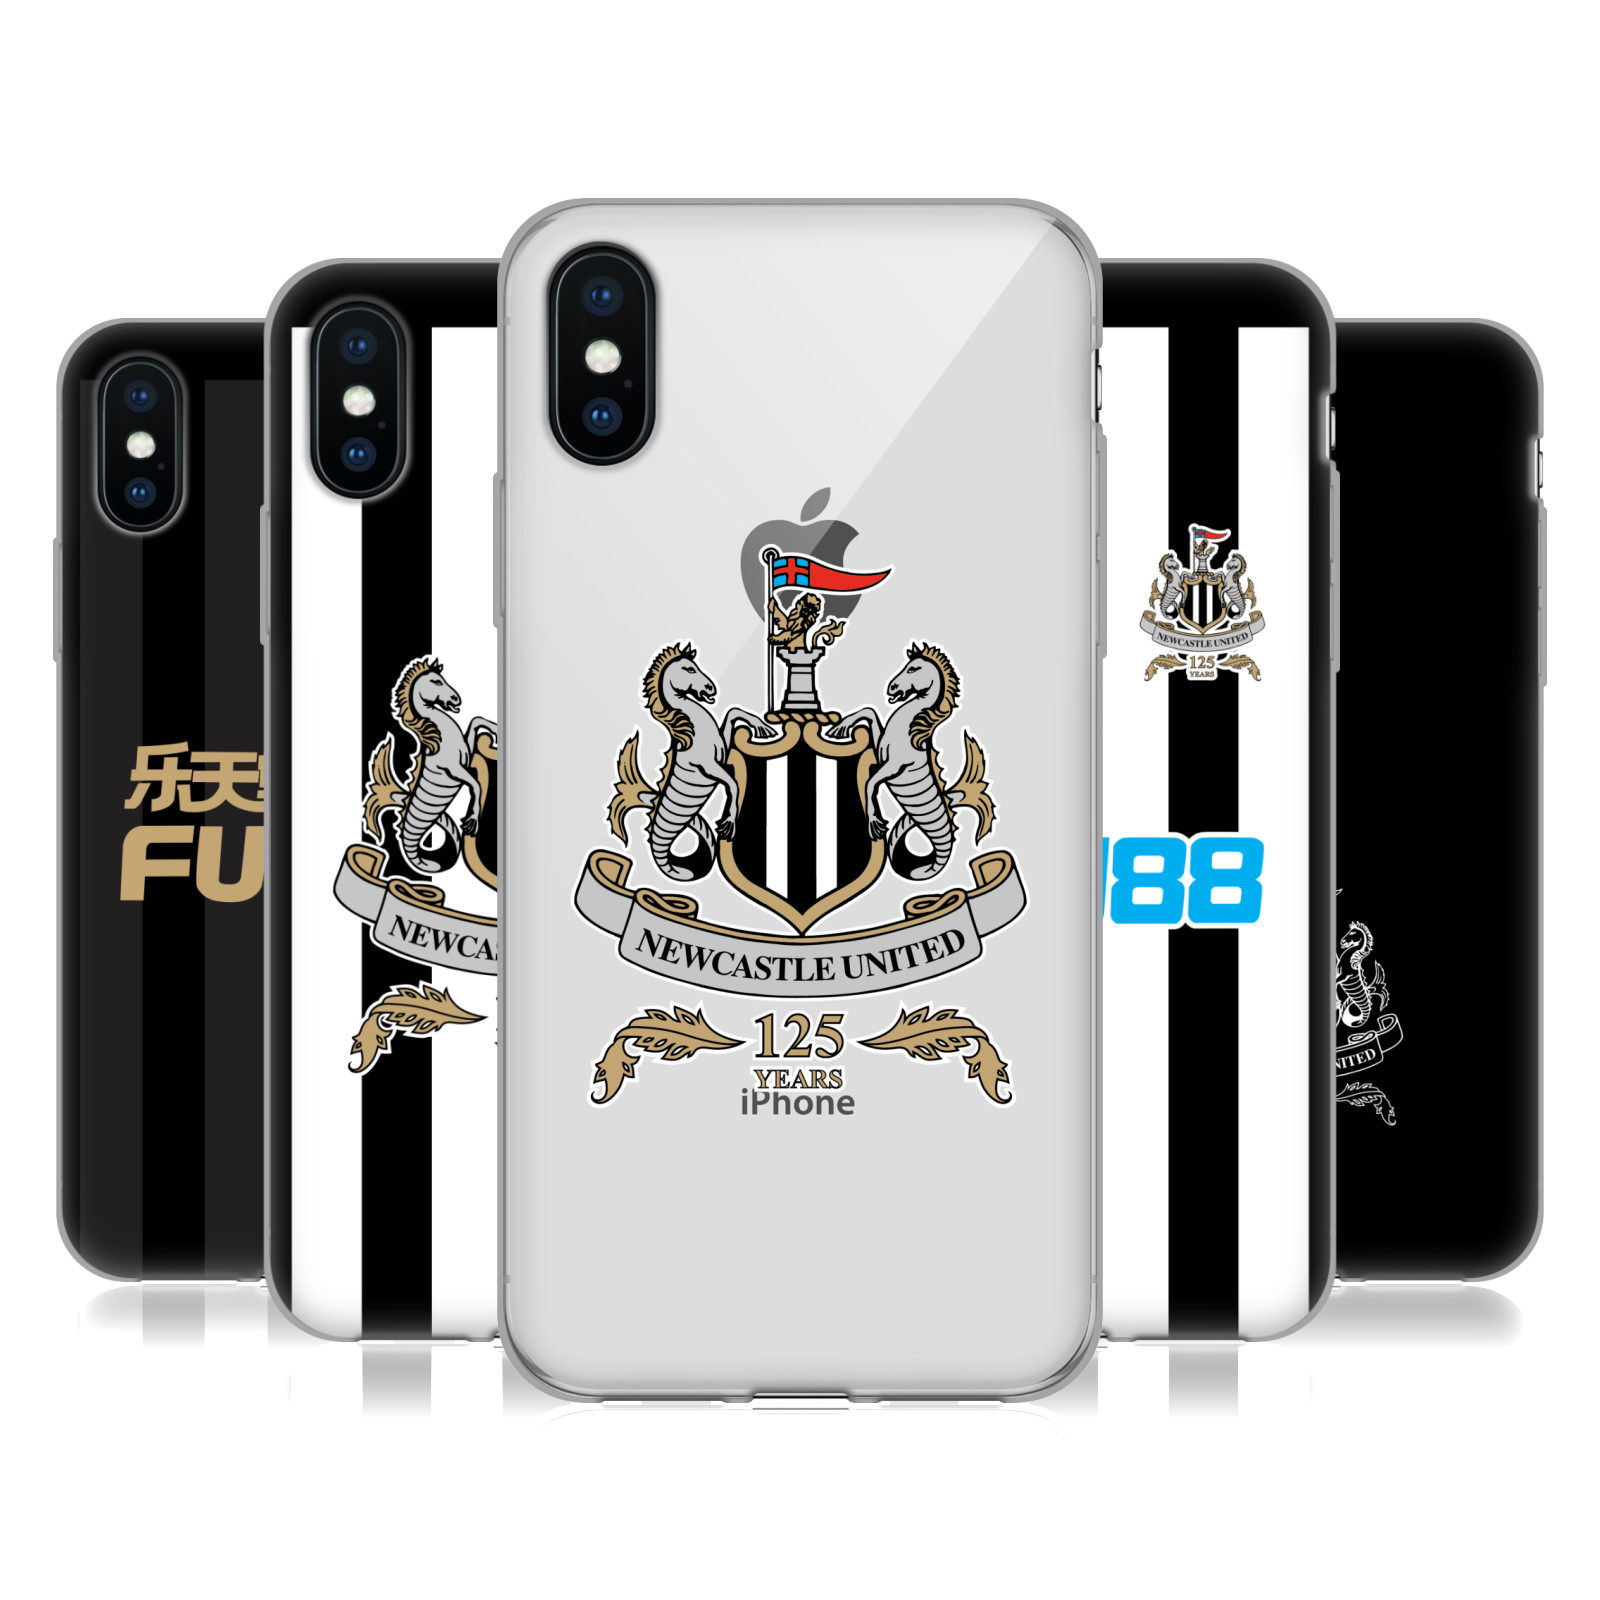 Newcastle United FC NUFC 125 Year Anniversary